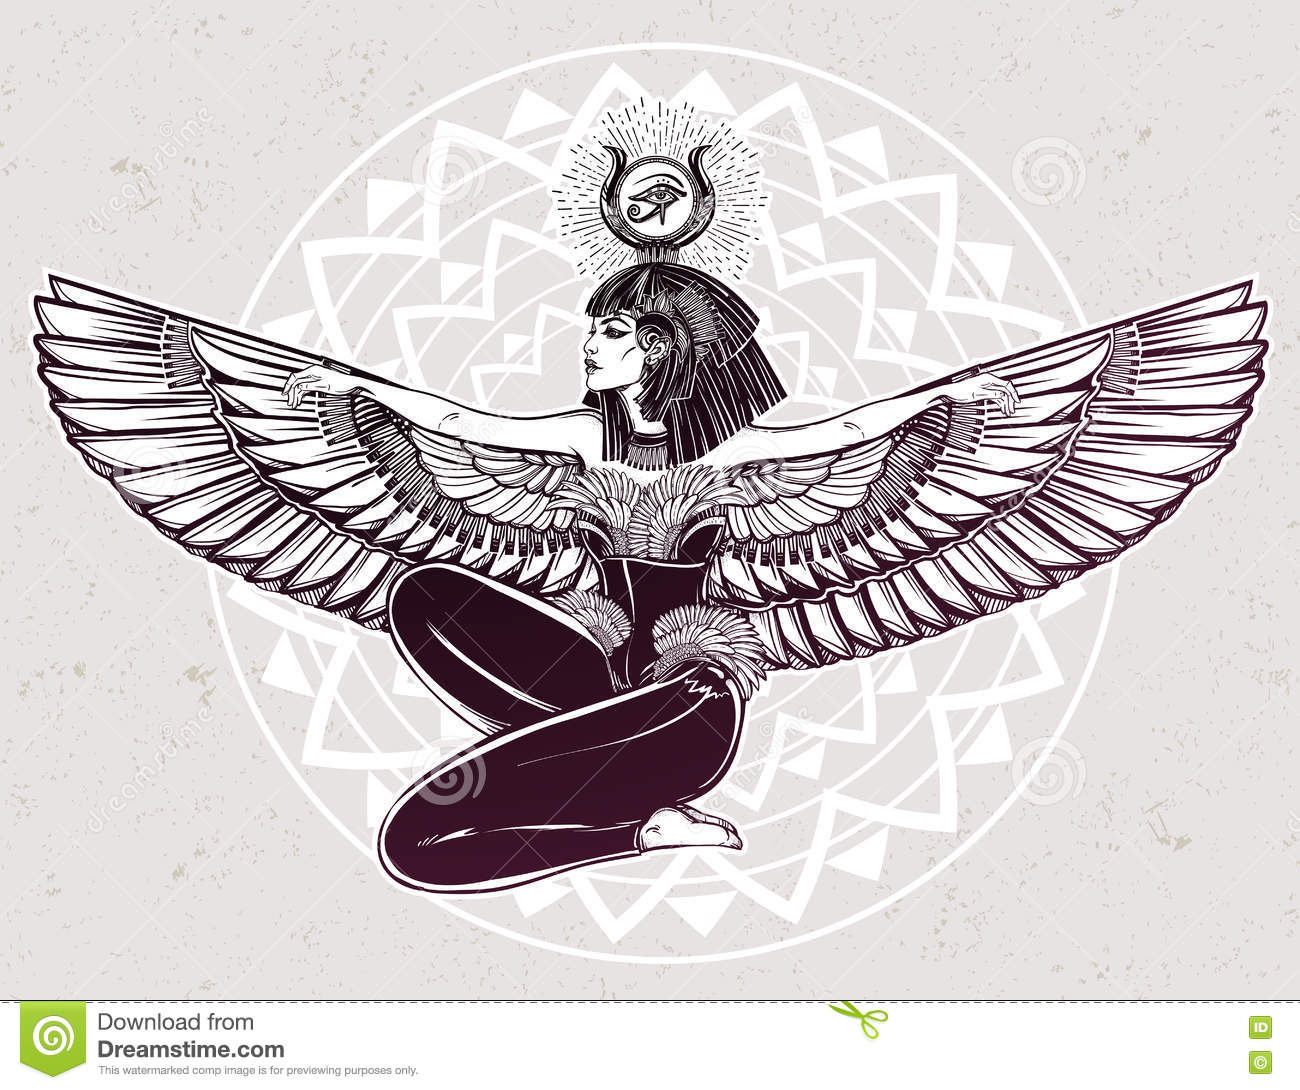 Egyptian godess isis with outstratched wings stock vector egyptian godess isis with outstratched wings biocorpaavc